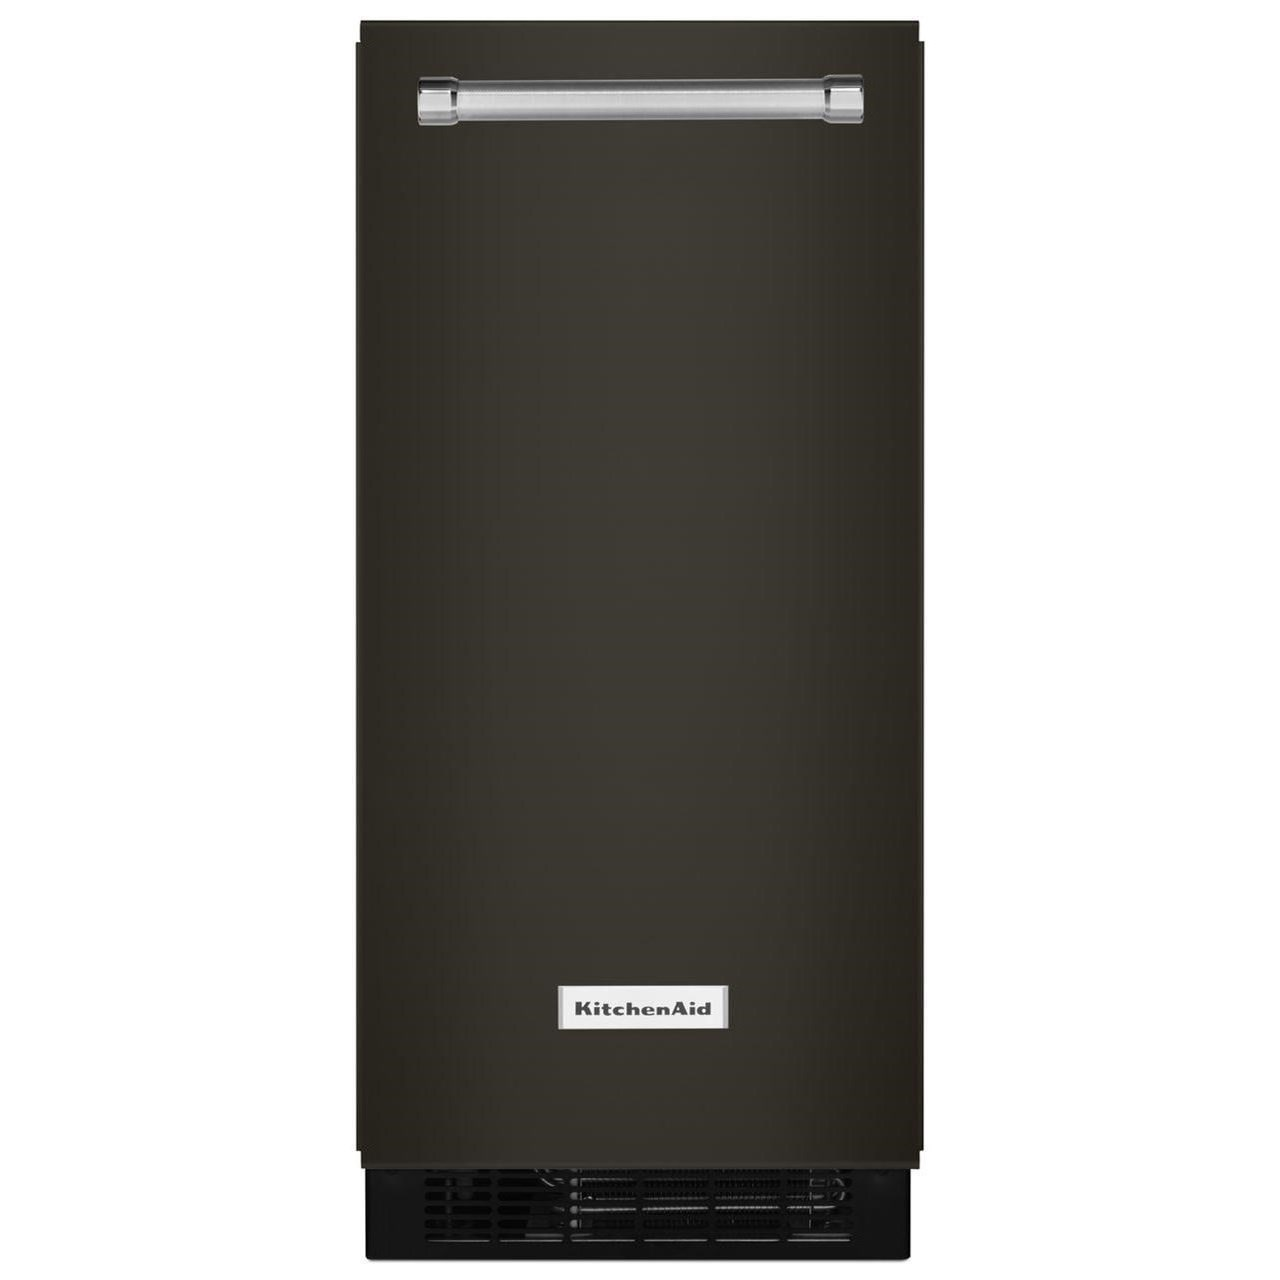 KitchenAid Ice Makers 15'' Automatic Ice Maker - Item Number: KUIX505EBS